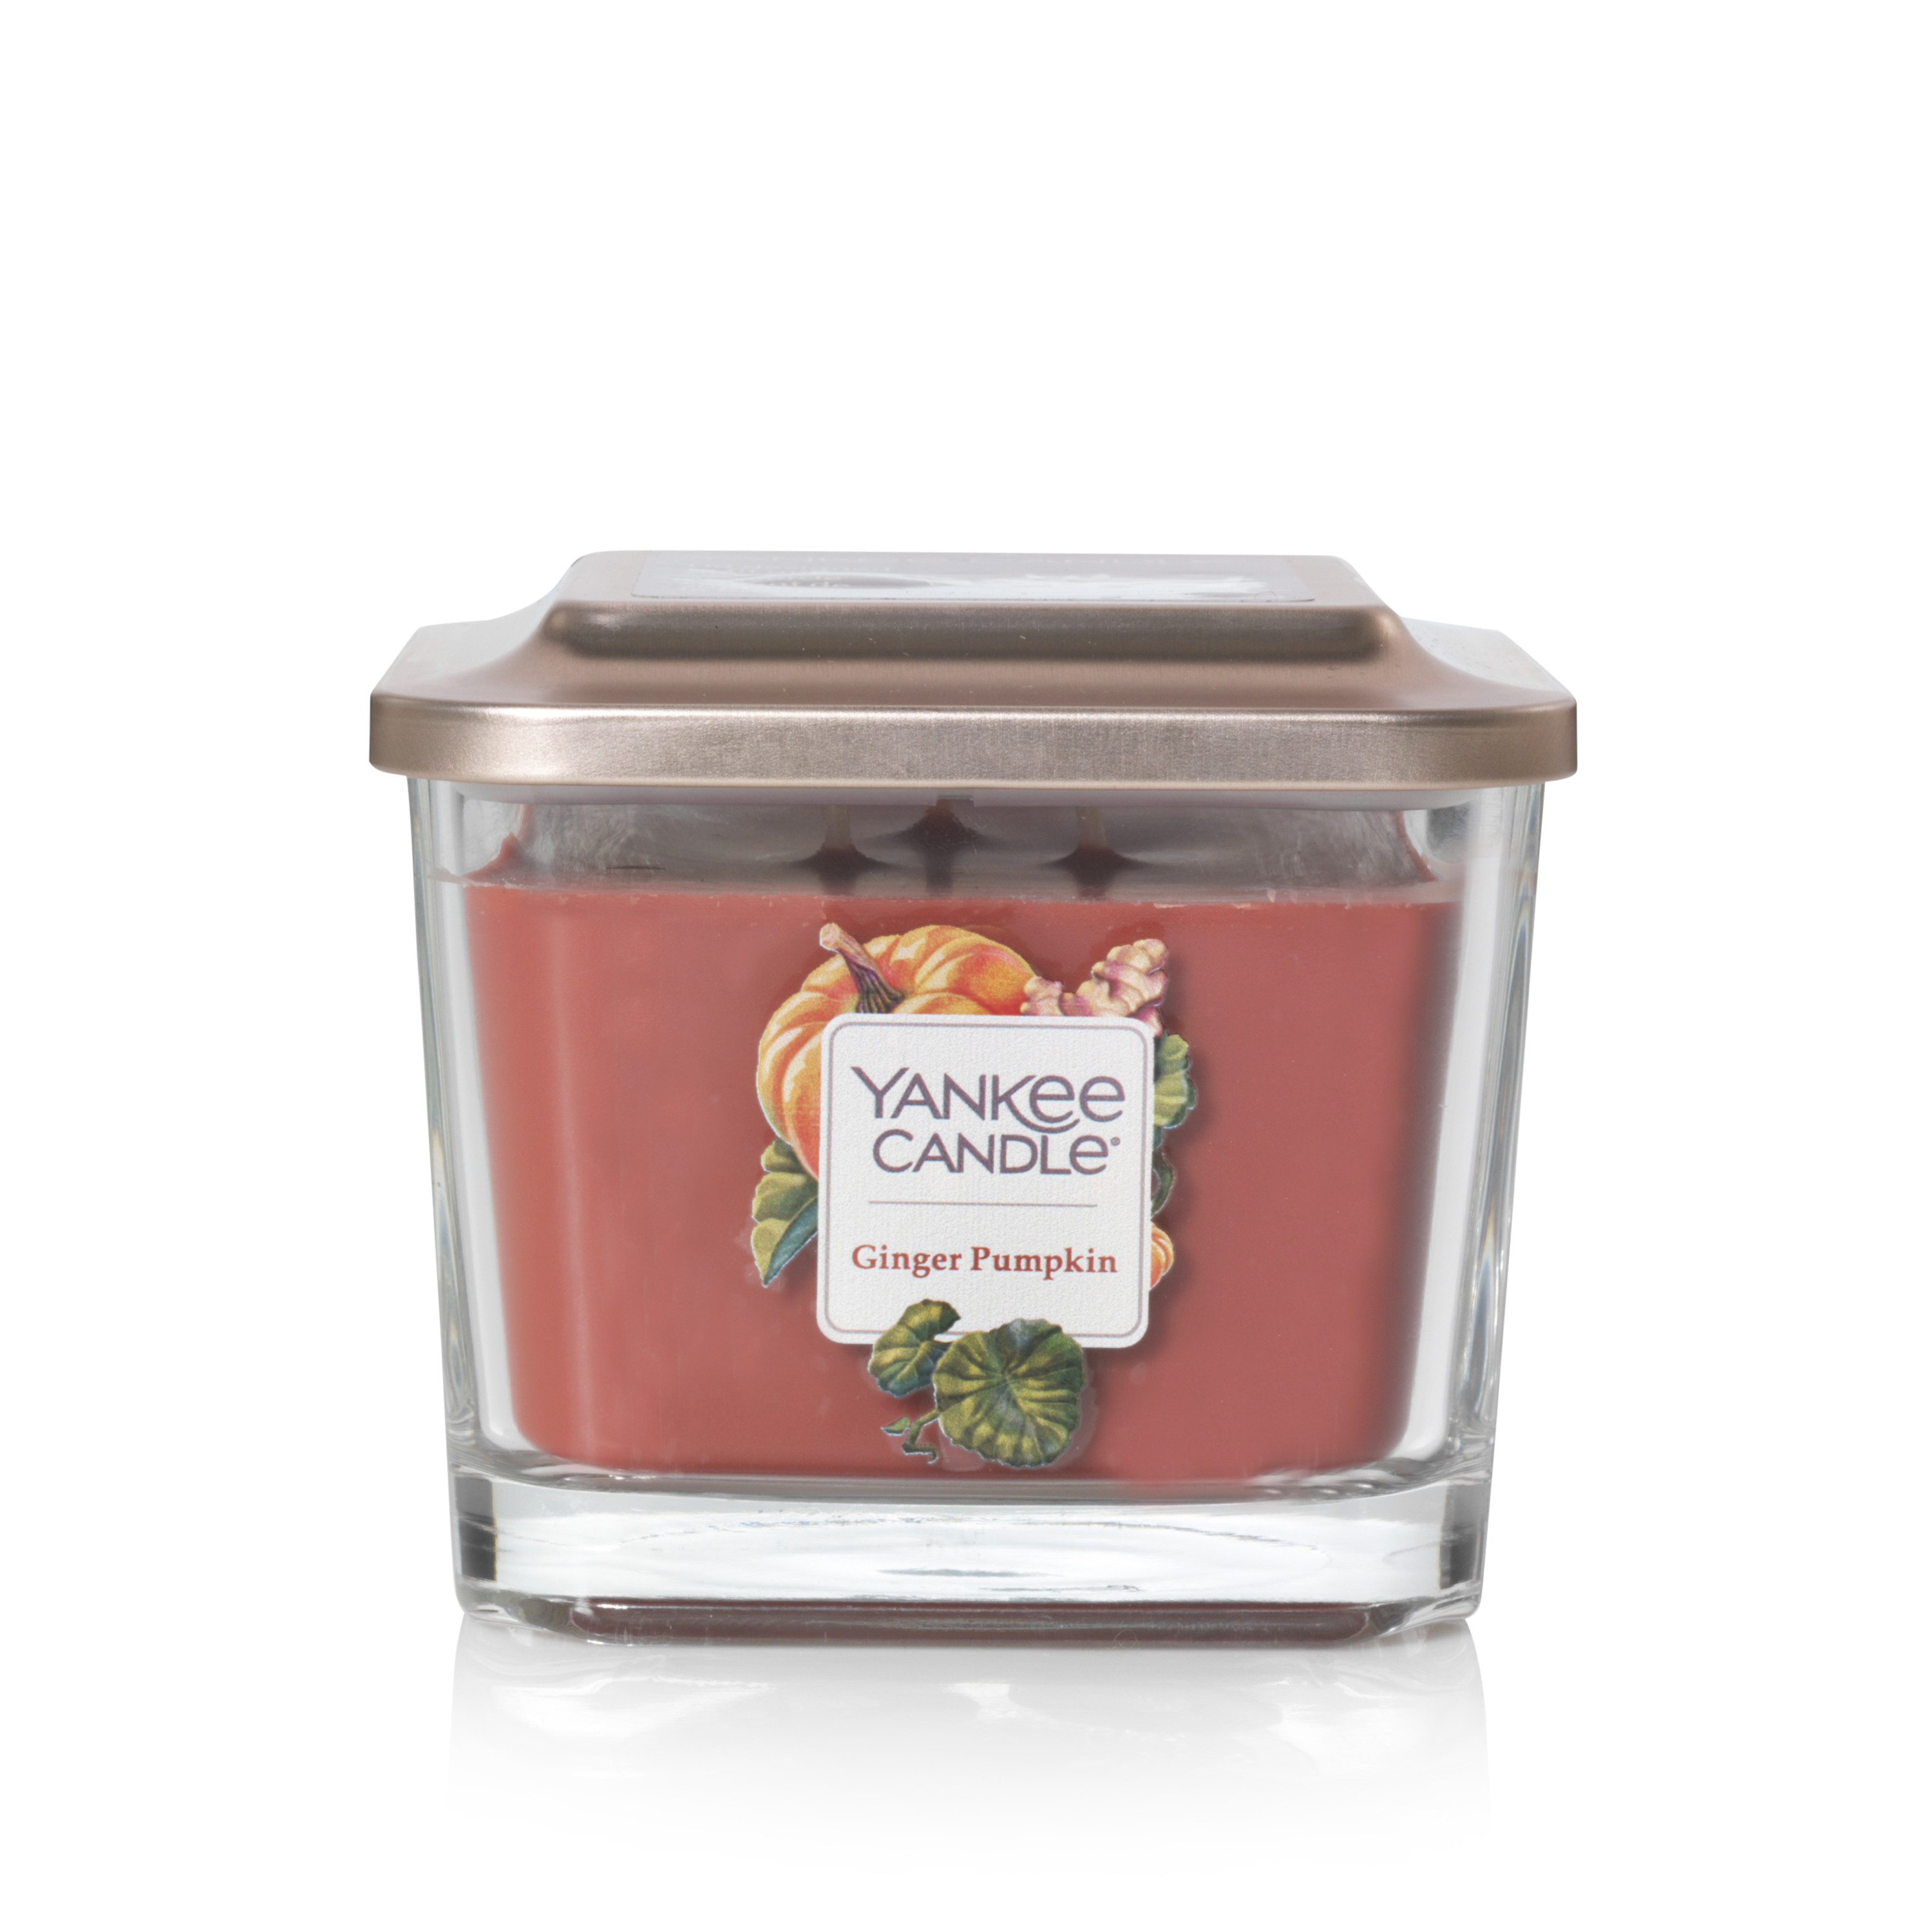 Yankee Candle Elevation Collection with Platform Lid Large 2-Wick Square Candle, Ginger Pumpkin